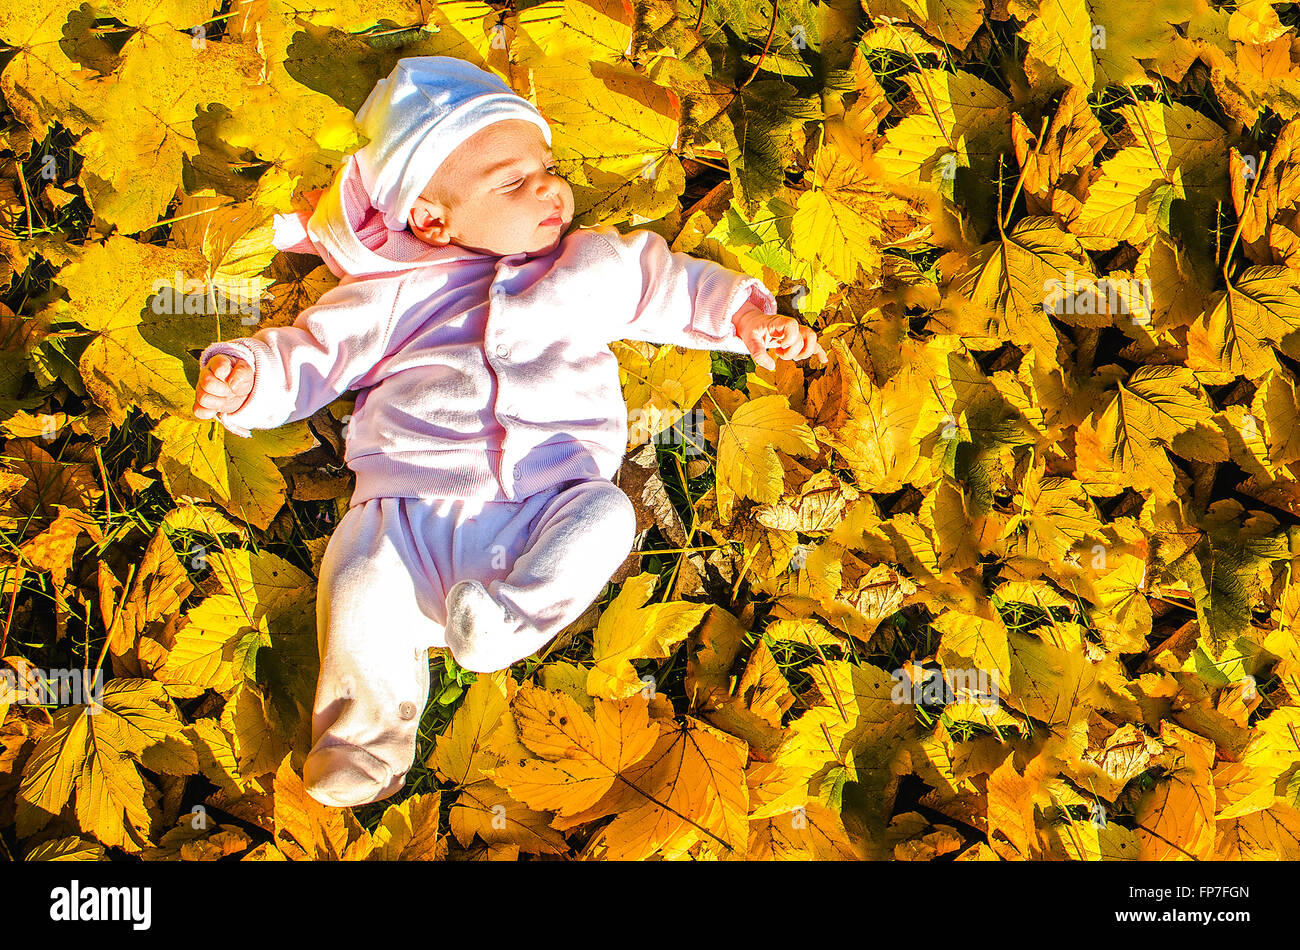 baby lay foliage ground autumn - Stock Image